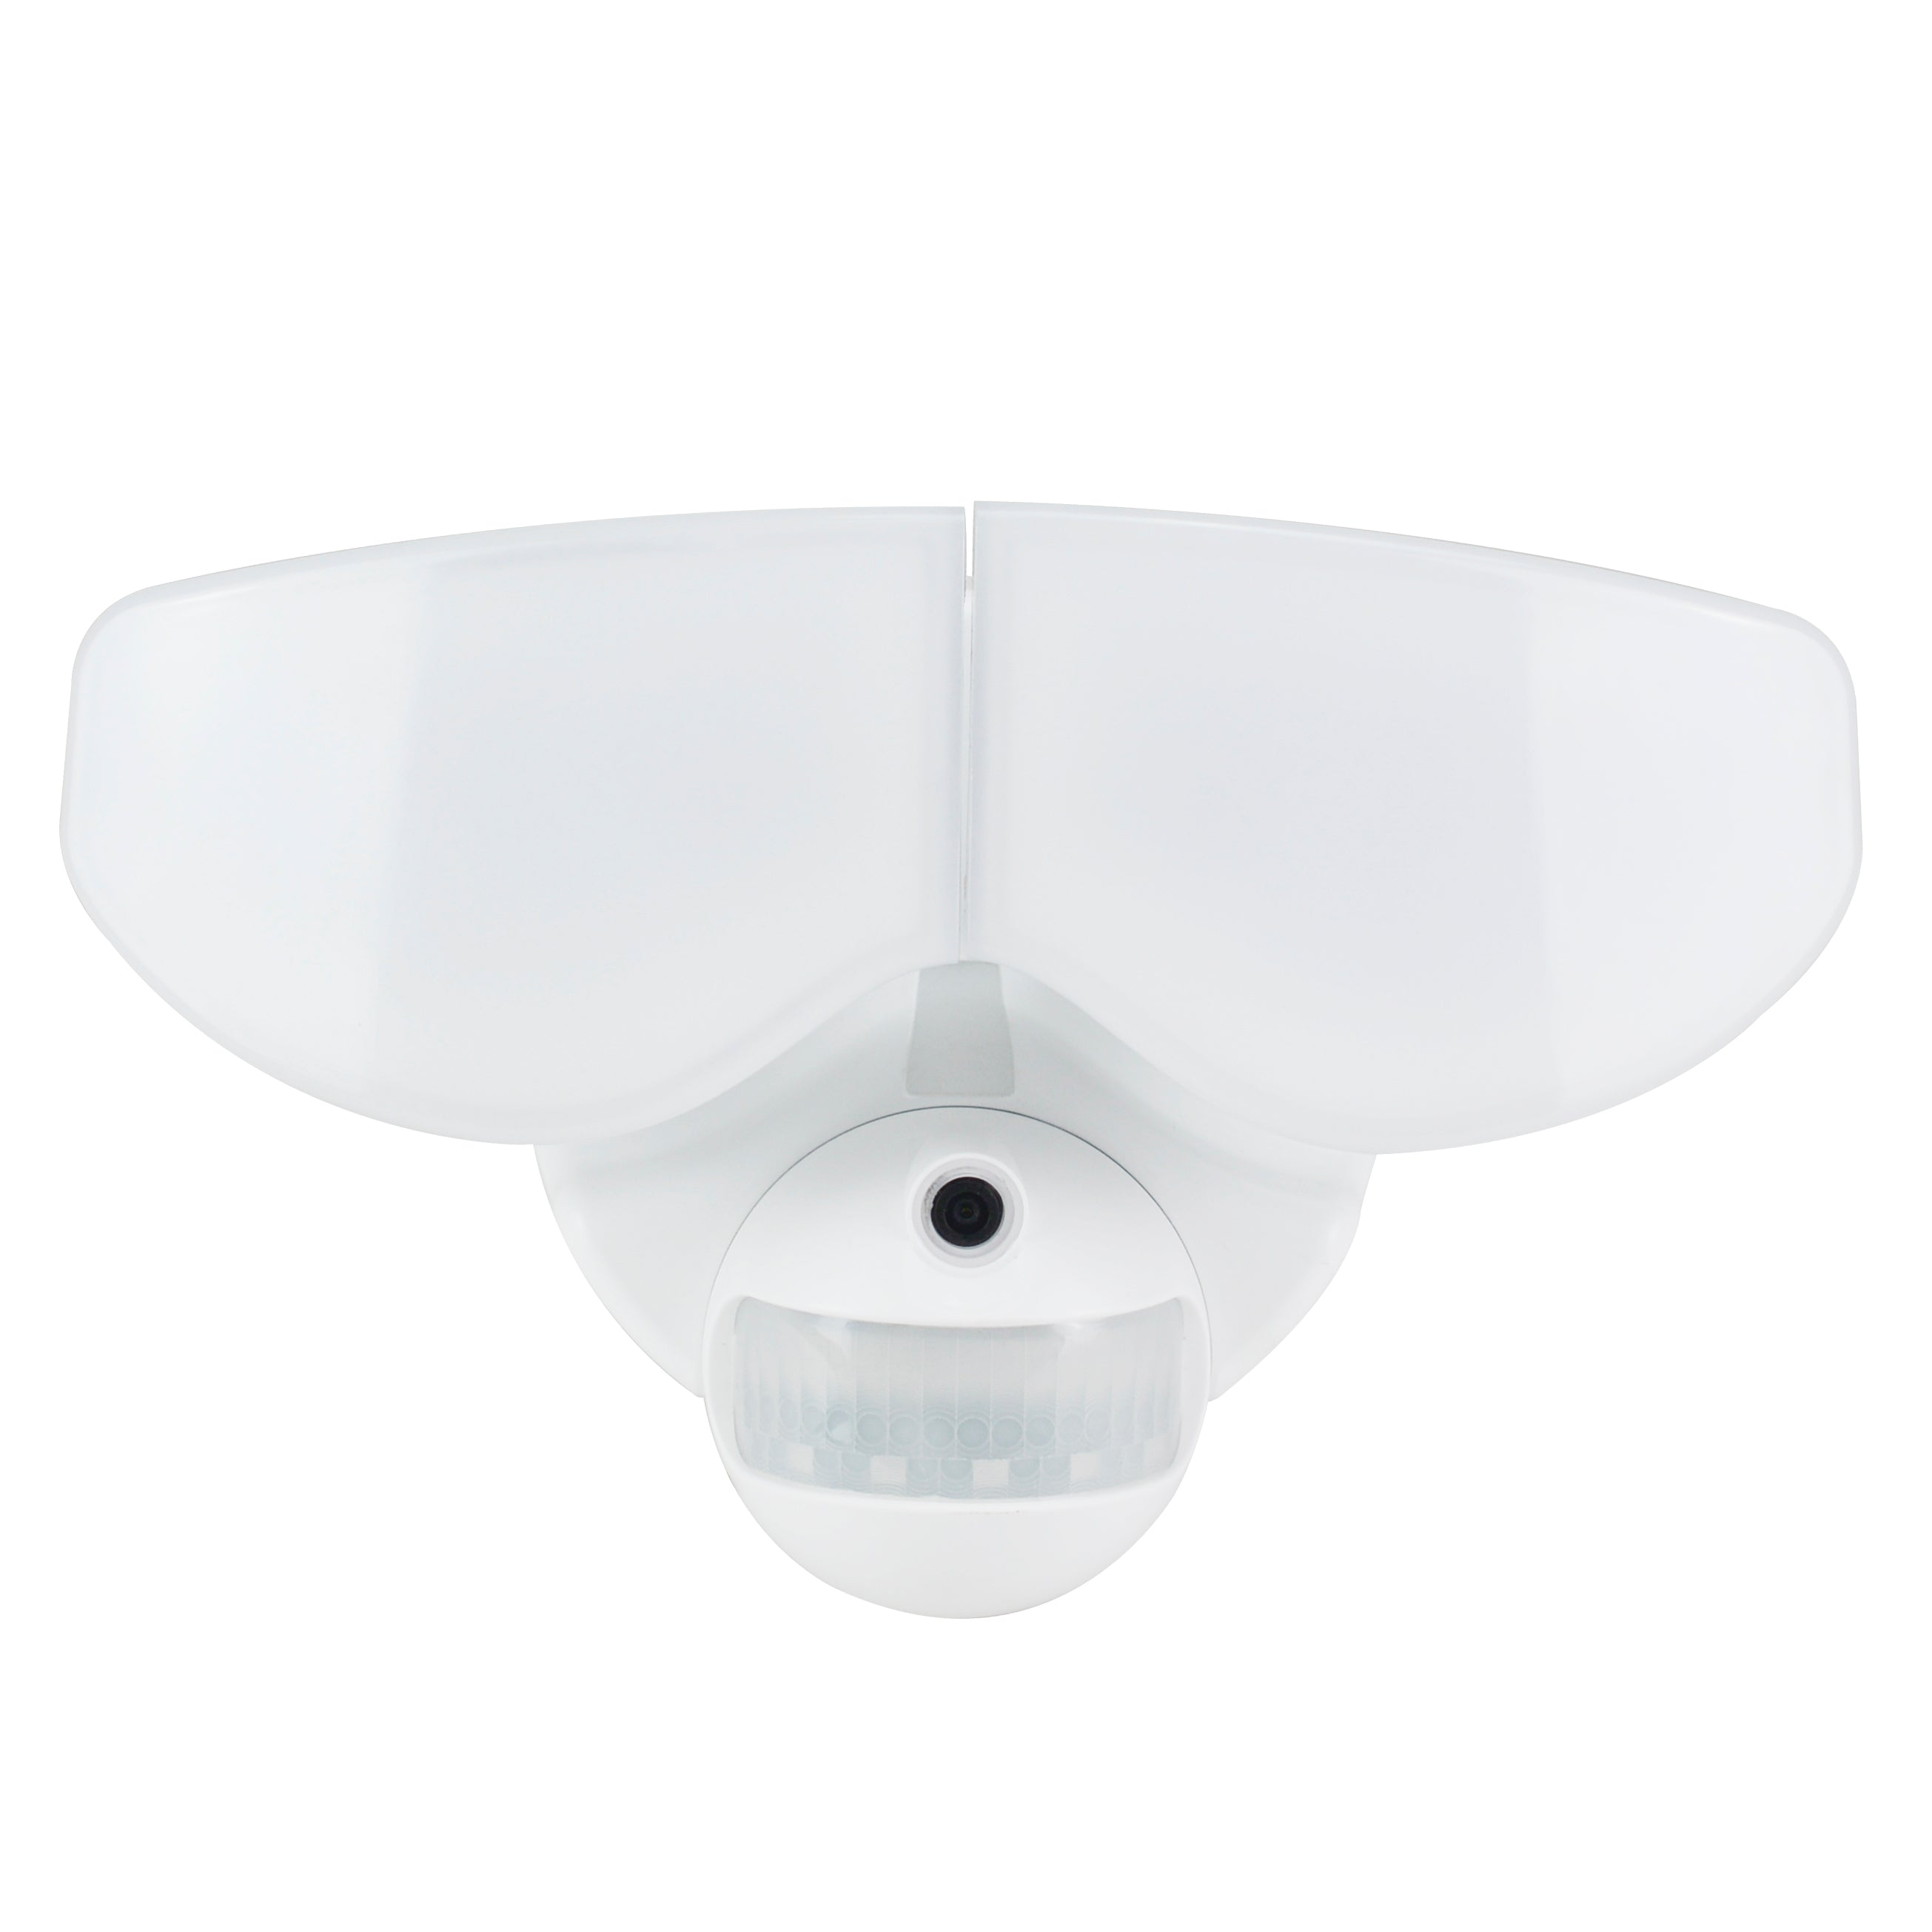 Netvue Floodlight white security camera & light